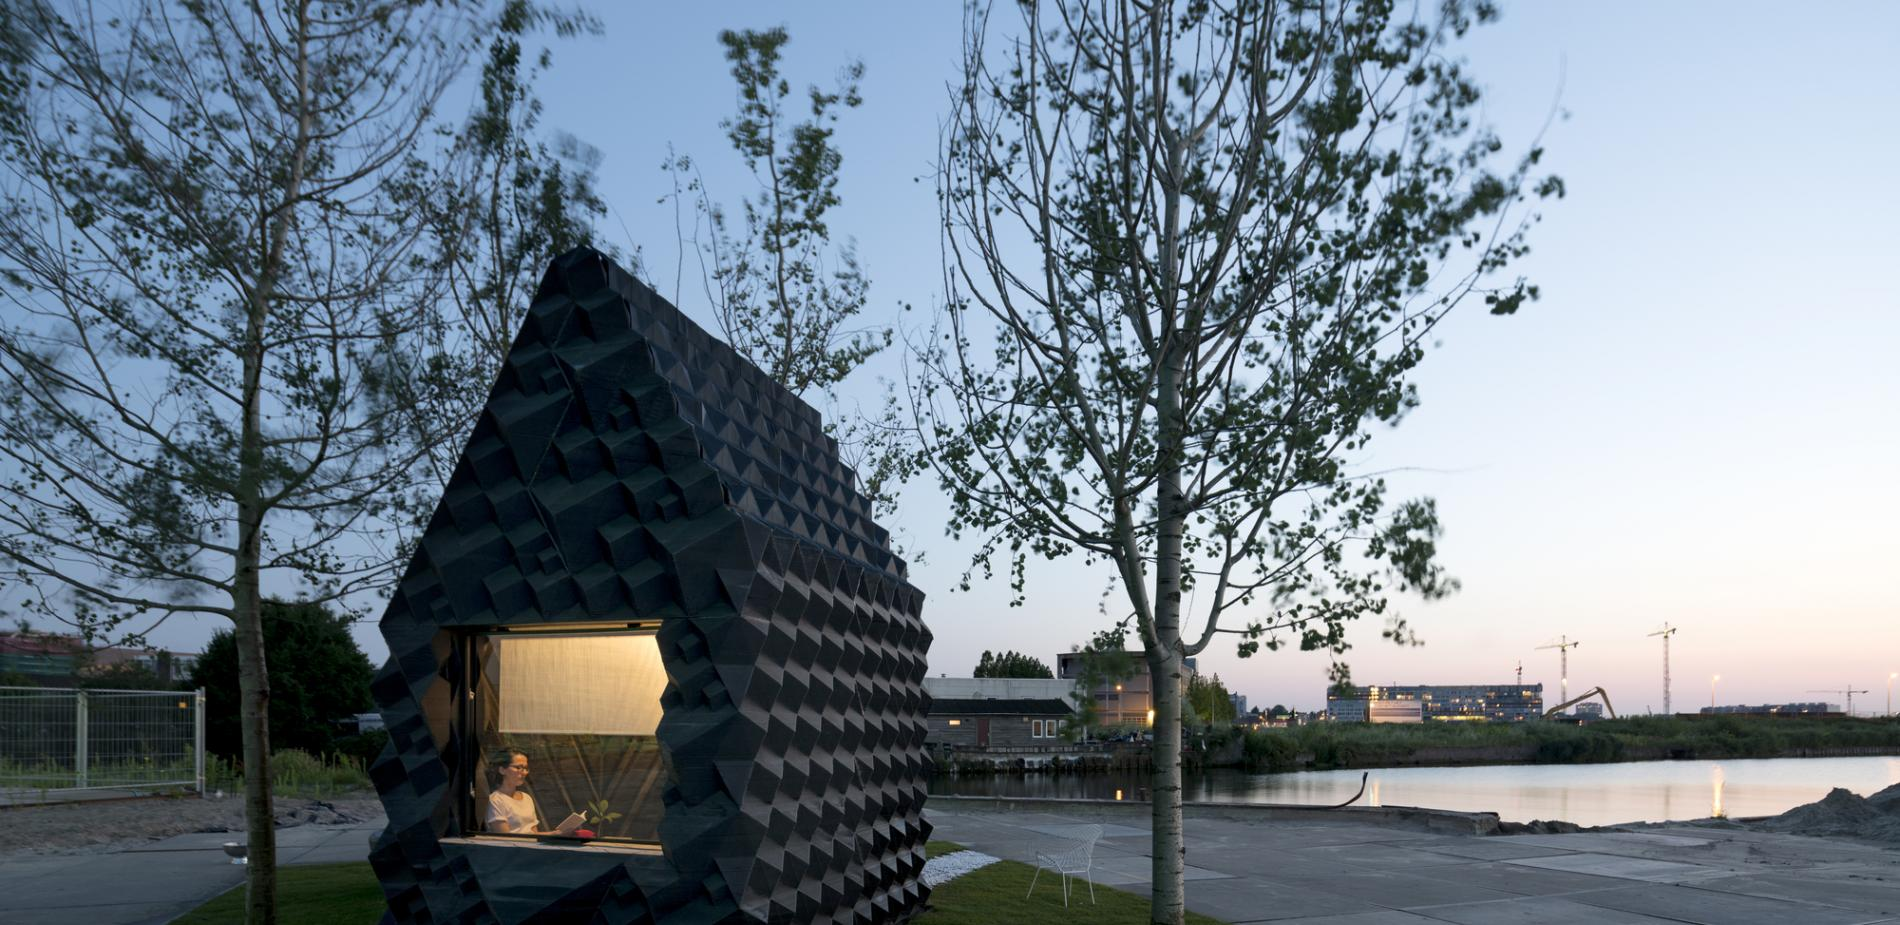 This odd-looking urban cabin was built in Amsterdam, Netherlands in 2015. Created by DUS Architects, it was printed in bioplastic and could serve as emergency housing and then destroyed and the material reused.